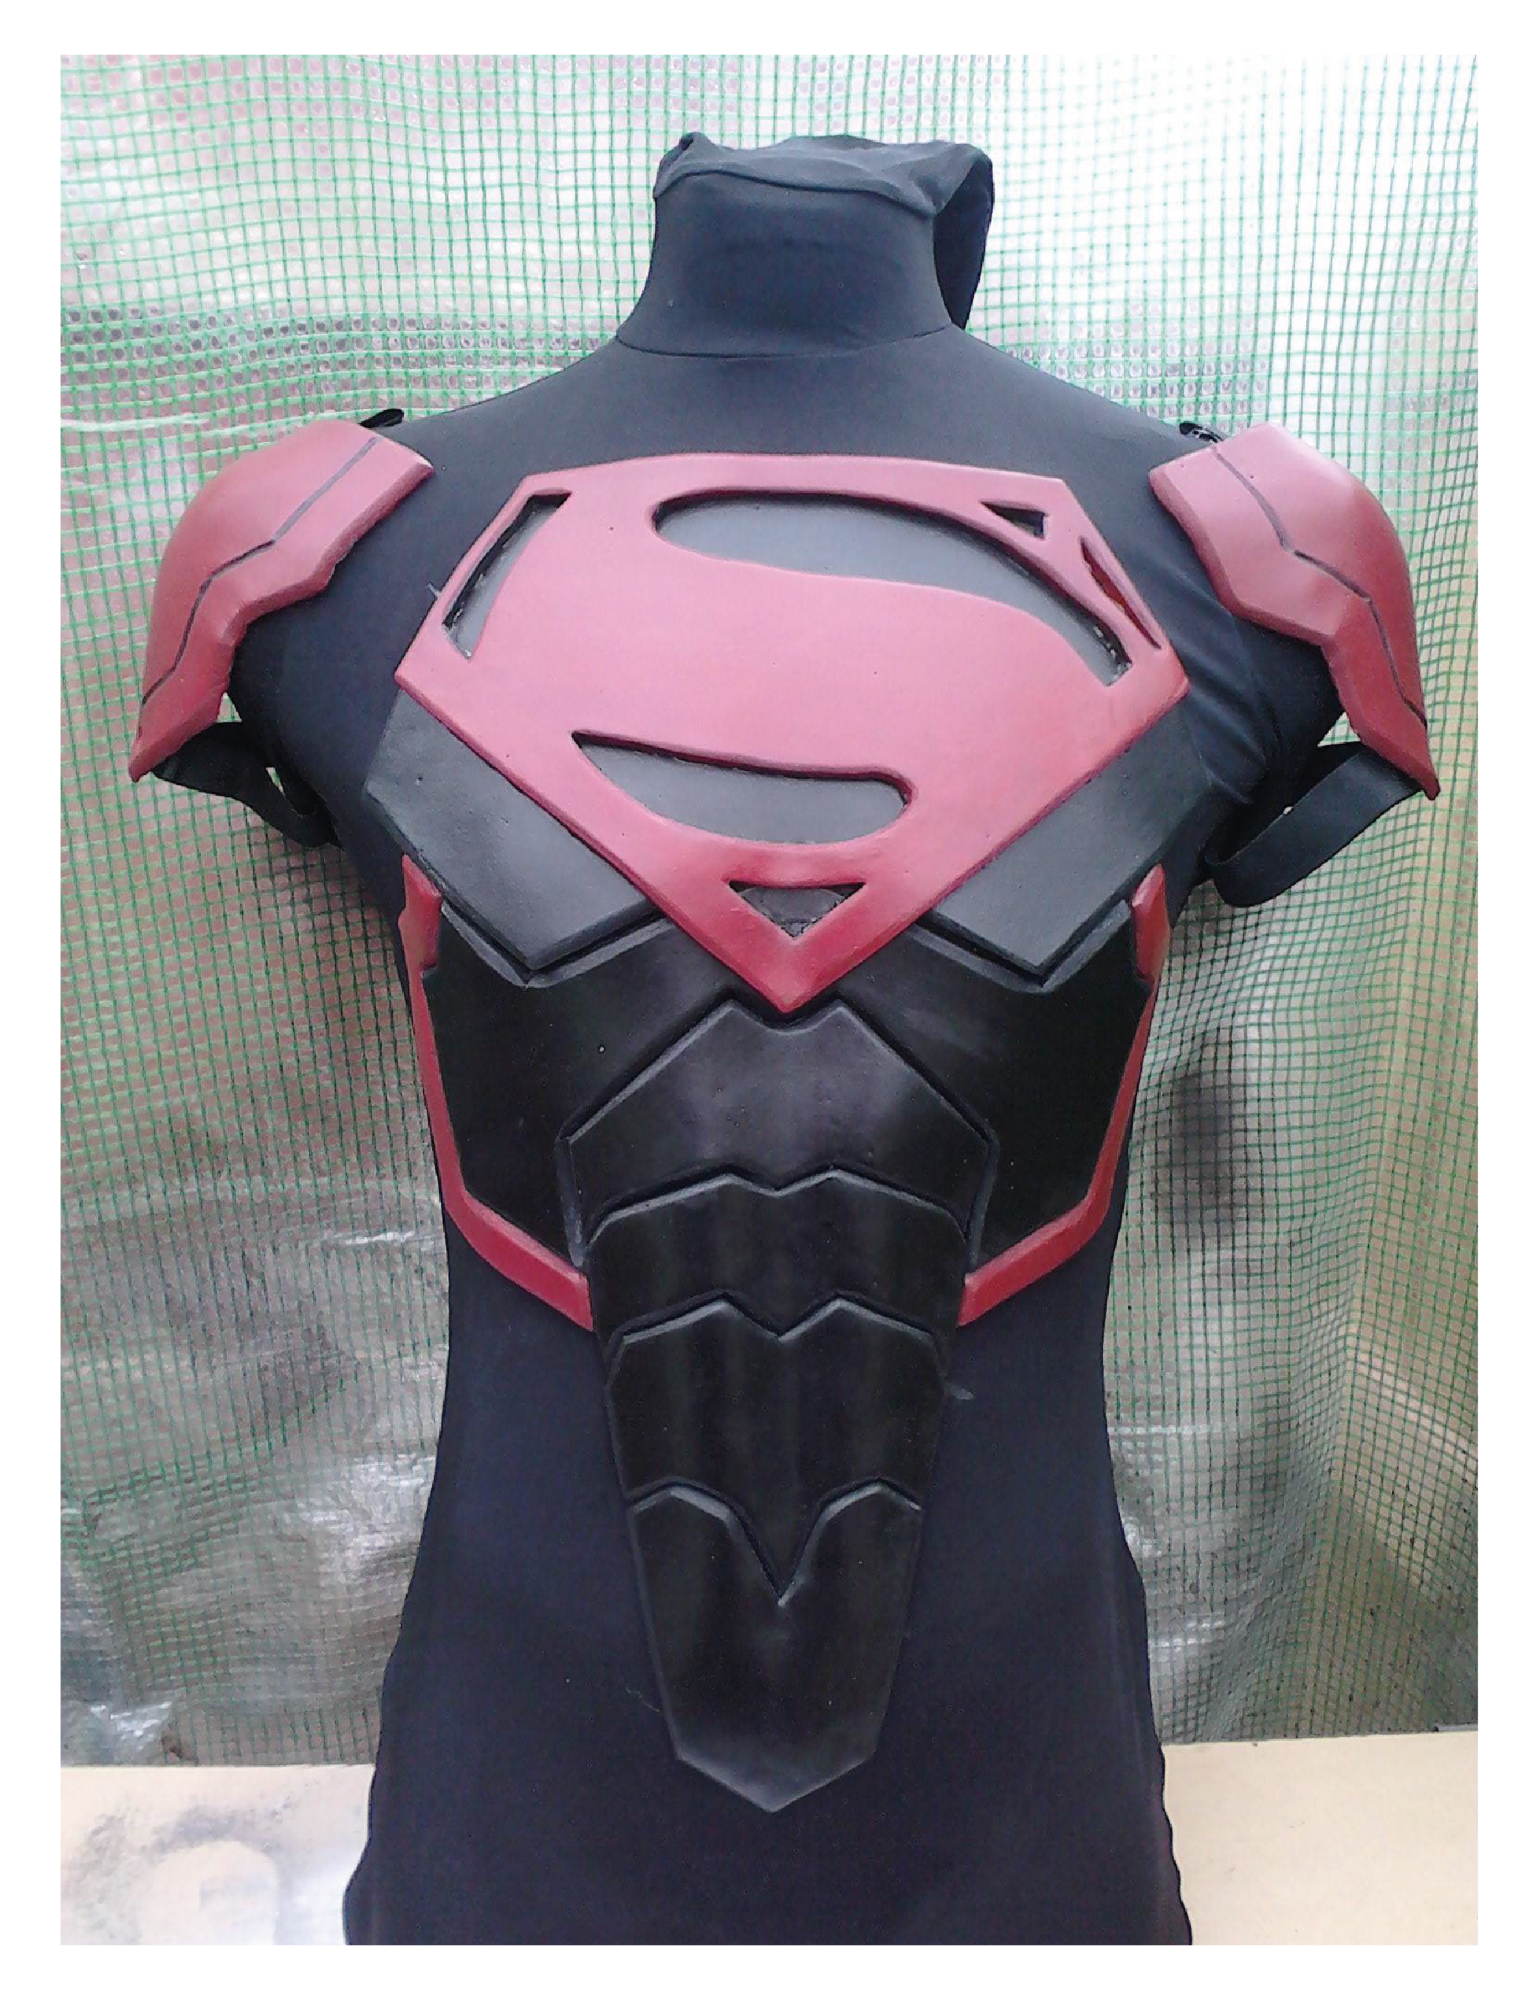 Superman foam armor for sale